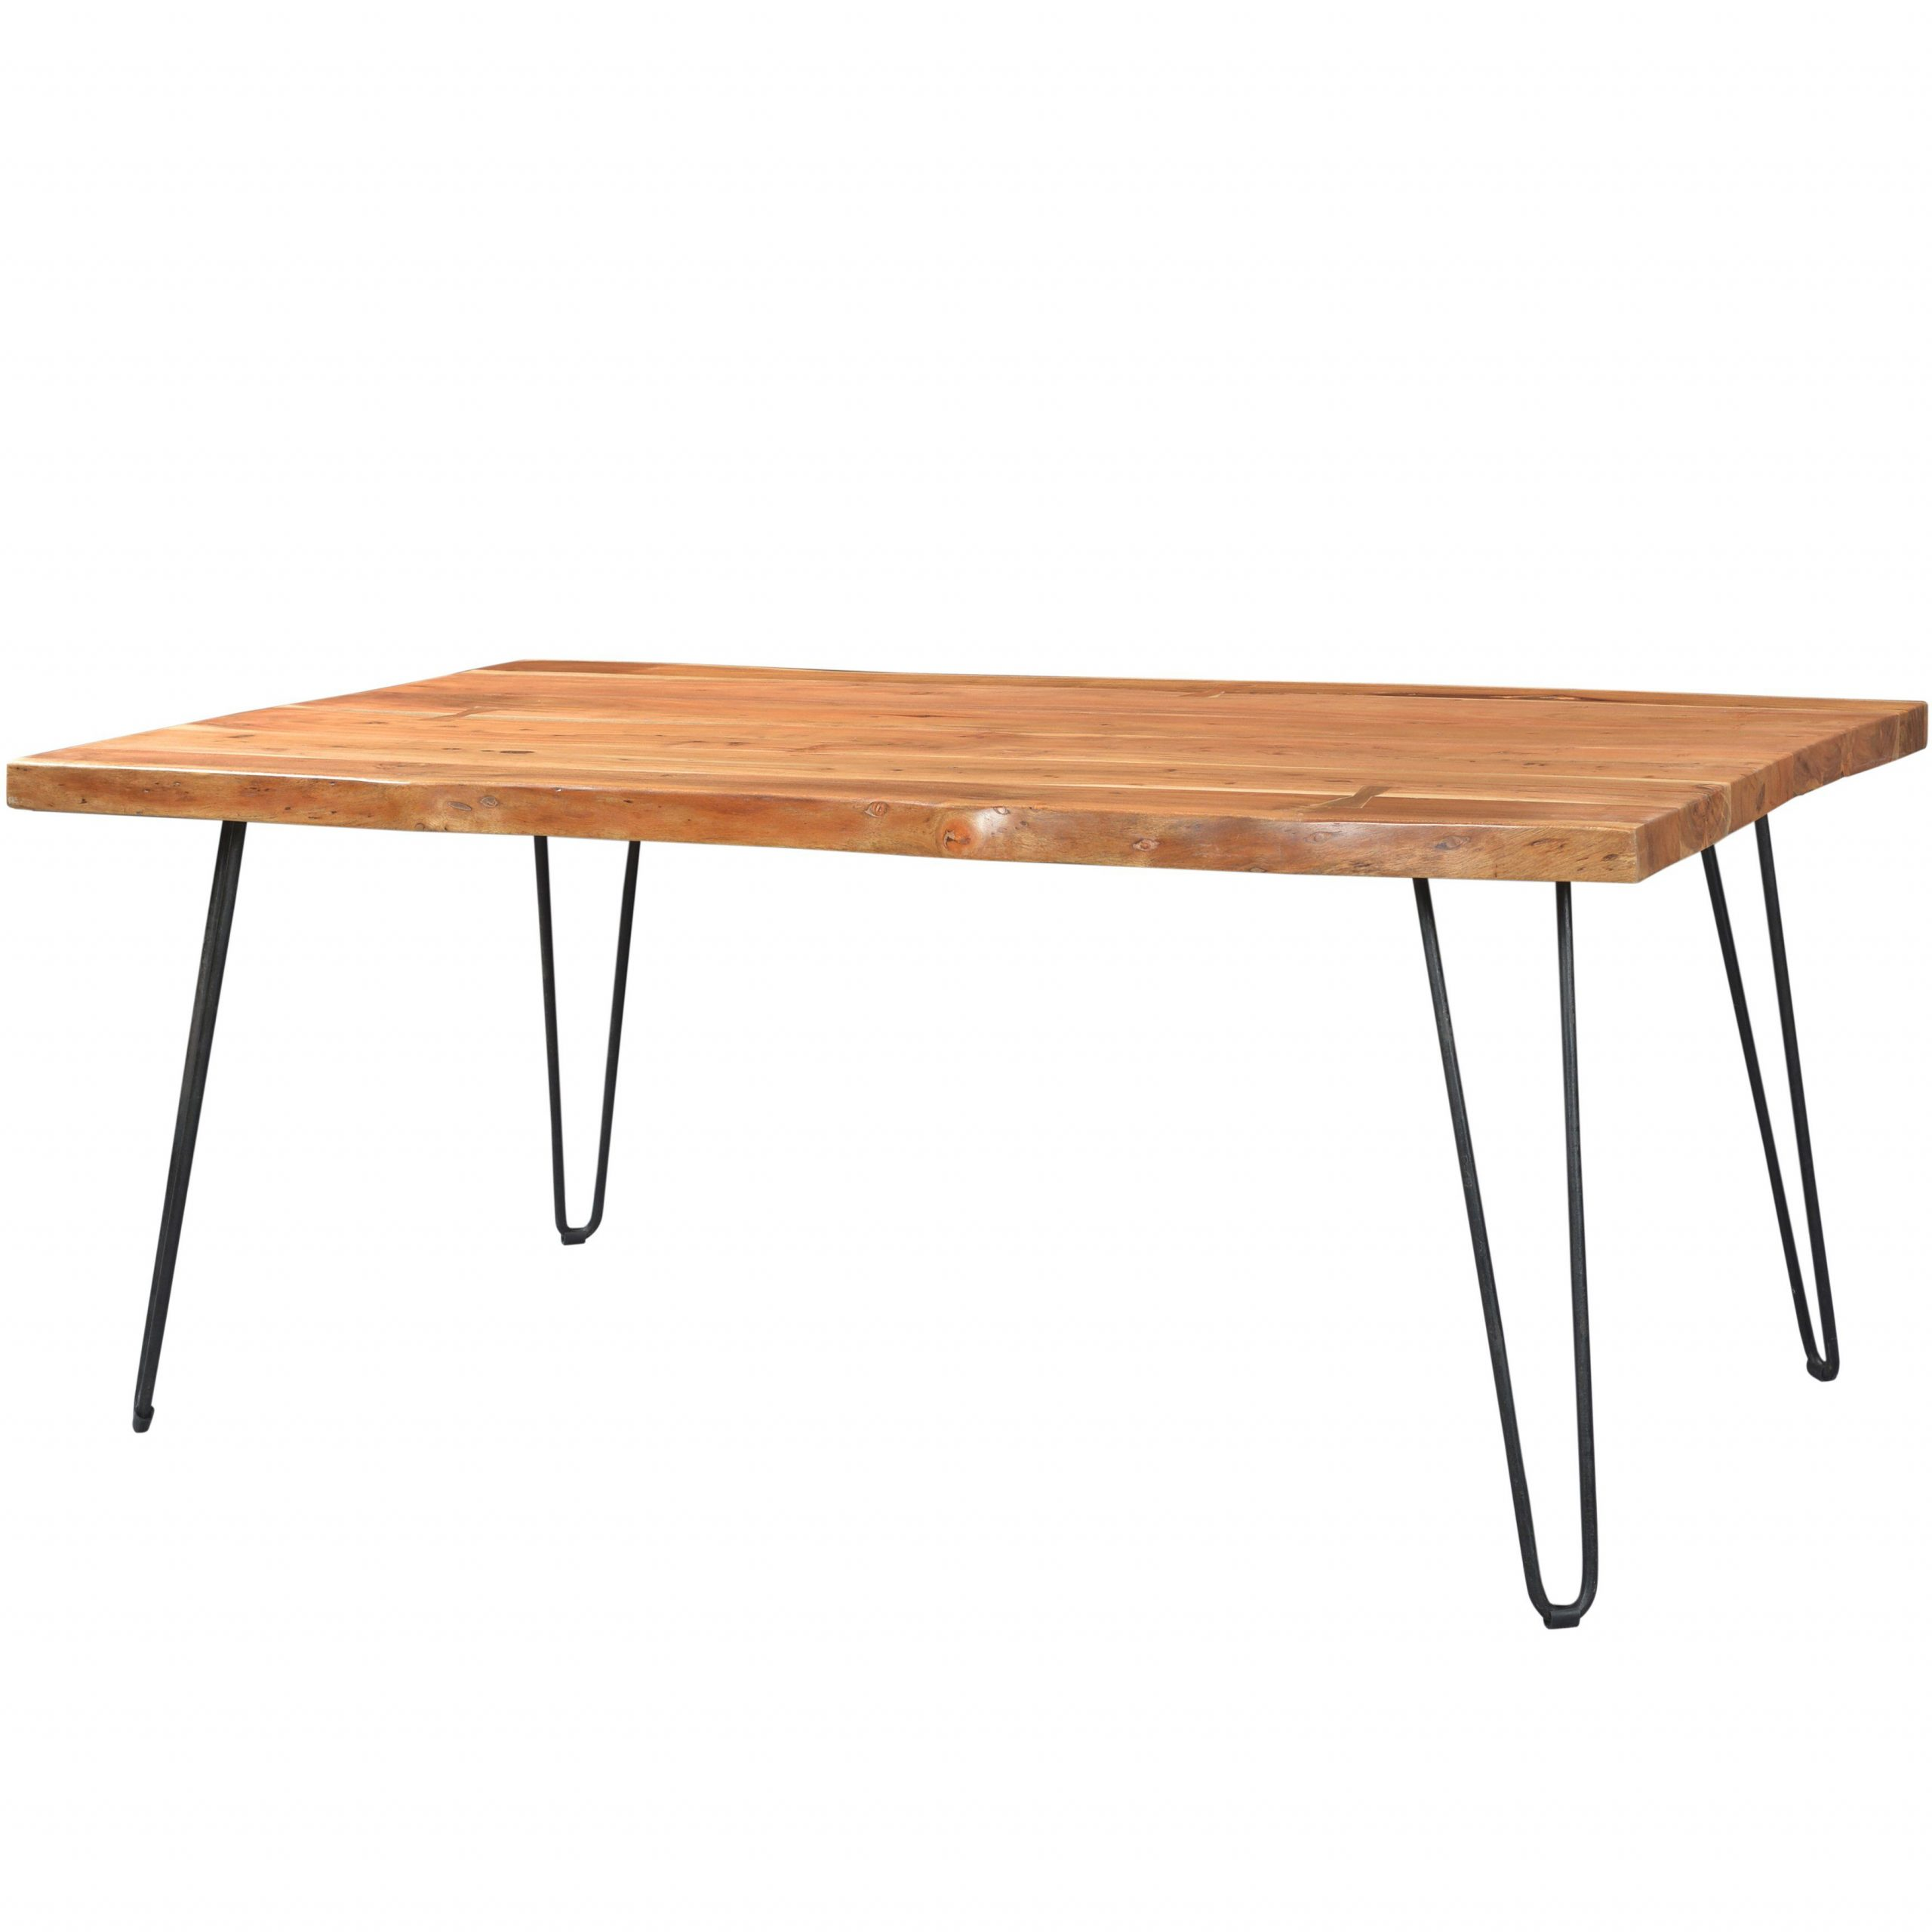 2020 Acacia Dining Tables With Black X Legs Throughout 71 X 40Handmade Wanderloot Mojave Sustainable Live Edge (View 3 of 25)